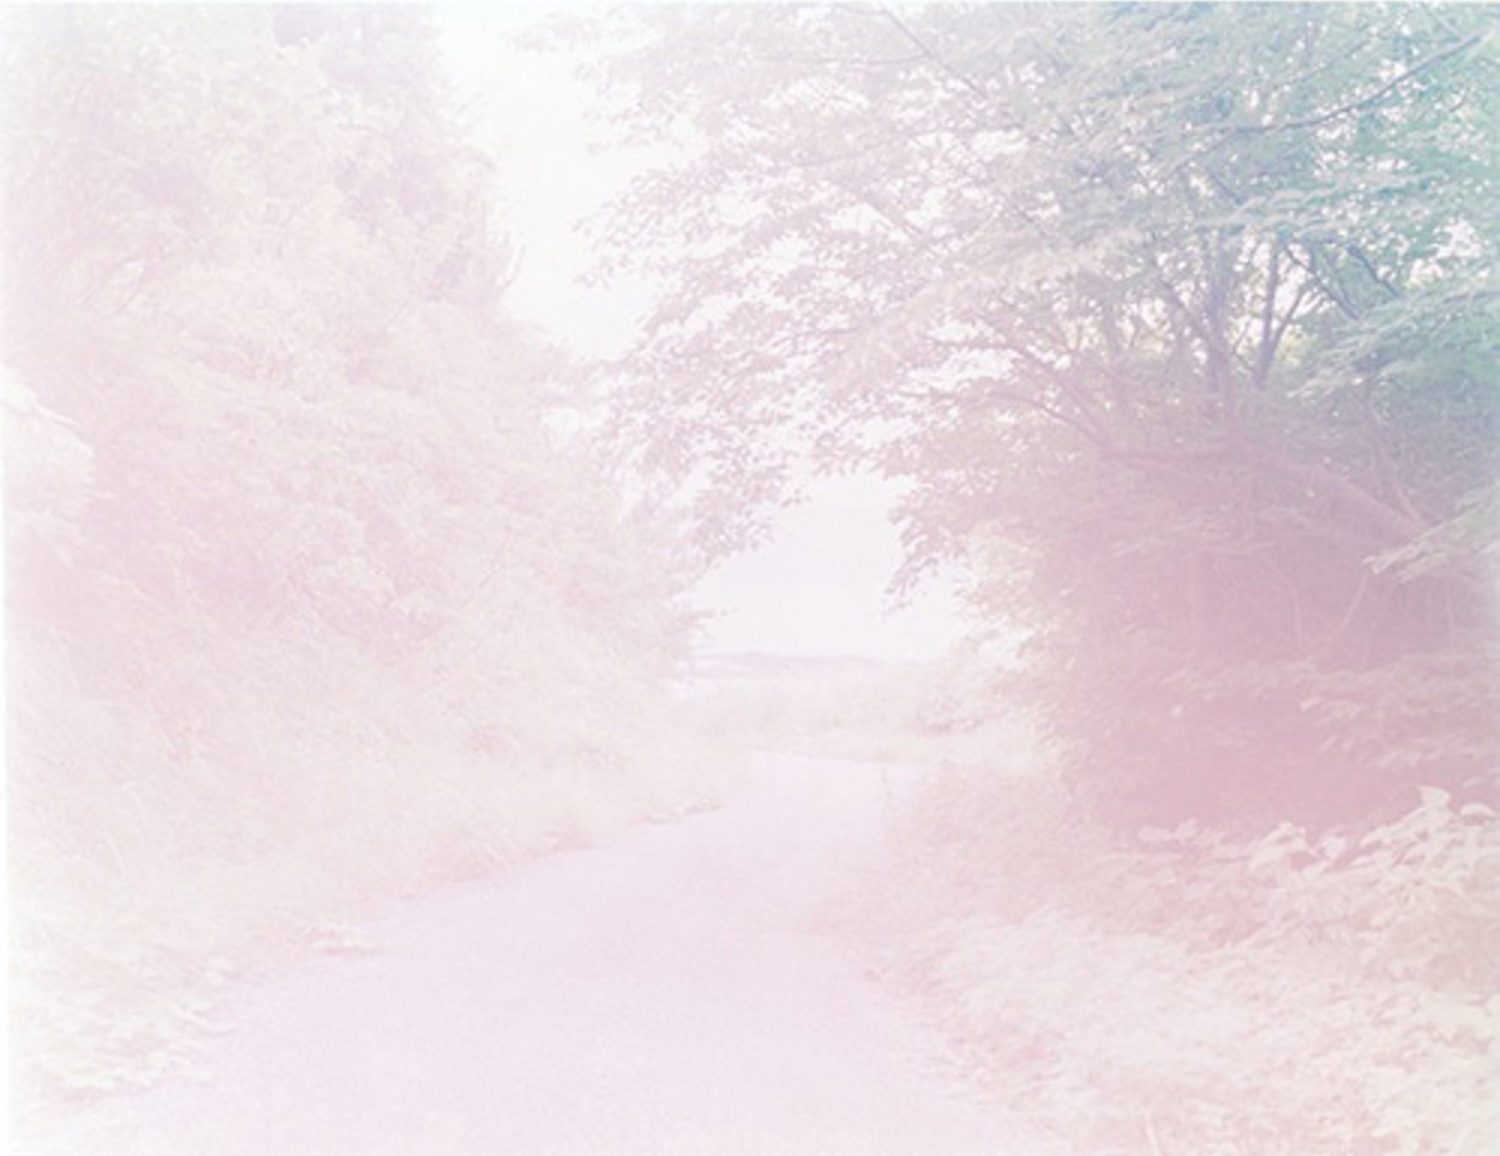 "Untitled ""The River Embraced Me"" series from 2015 © Rinko Kawauchi"